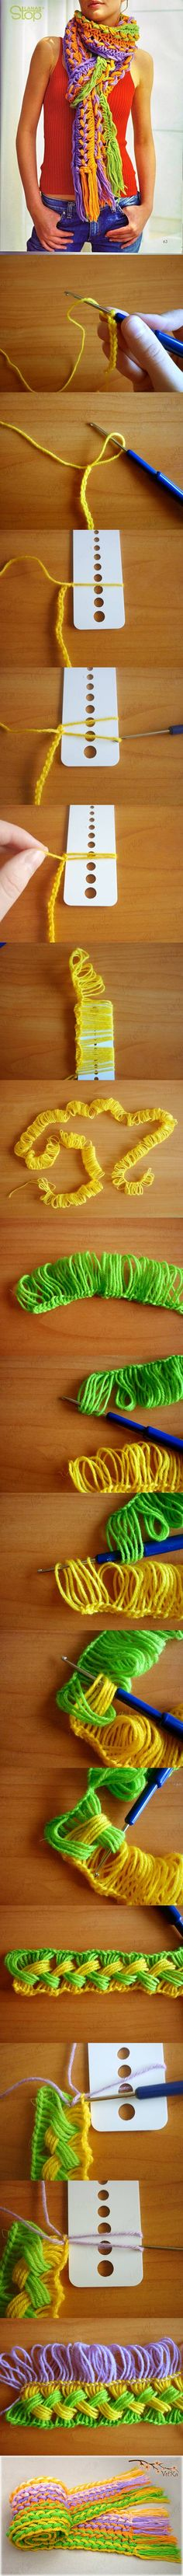 diy ideas, clothes crafts, crochet ideas, diy crafts, crochet crafts, diy clothes, hairpin lace, craft ideas, crochet scarfs